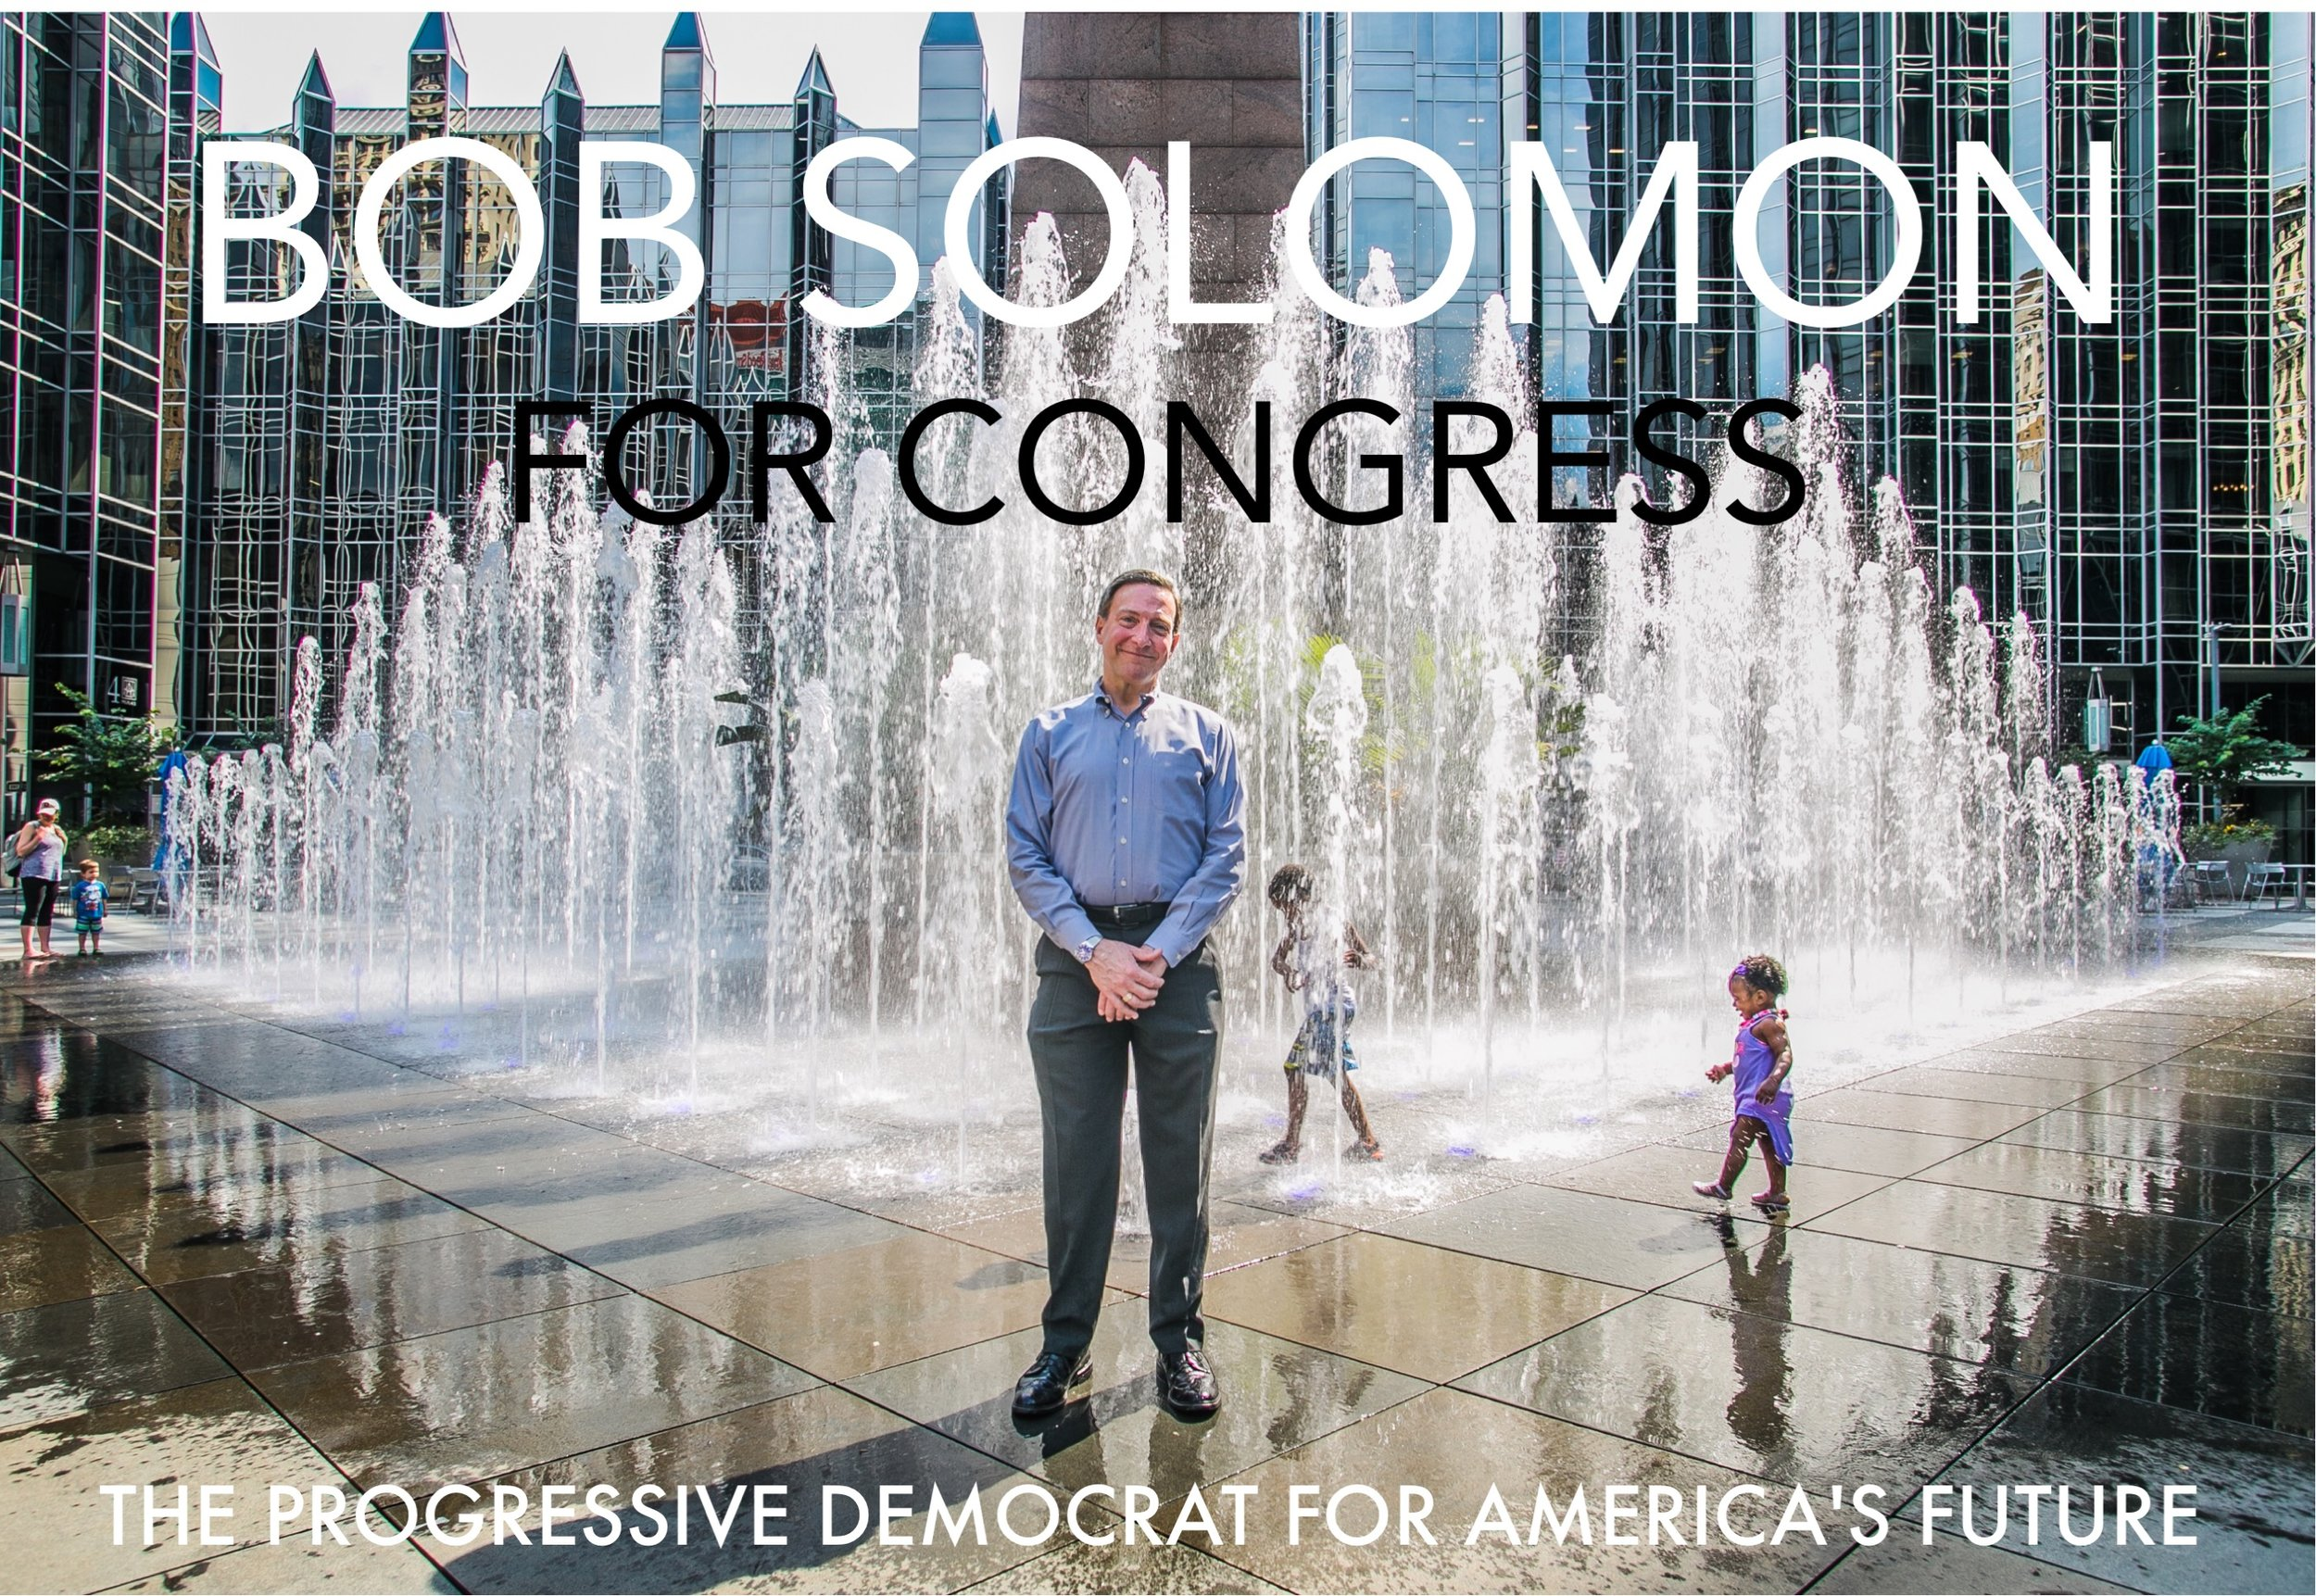 Social Media Graphic - Congressional Candidate Bob Solomon - Photo and Text Design by: Mike Schwarz